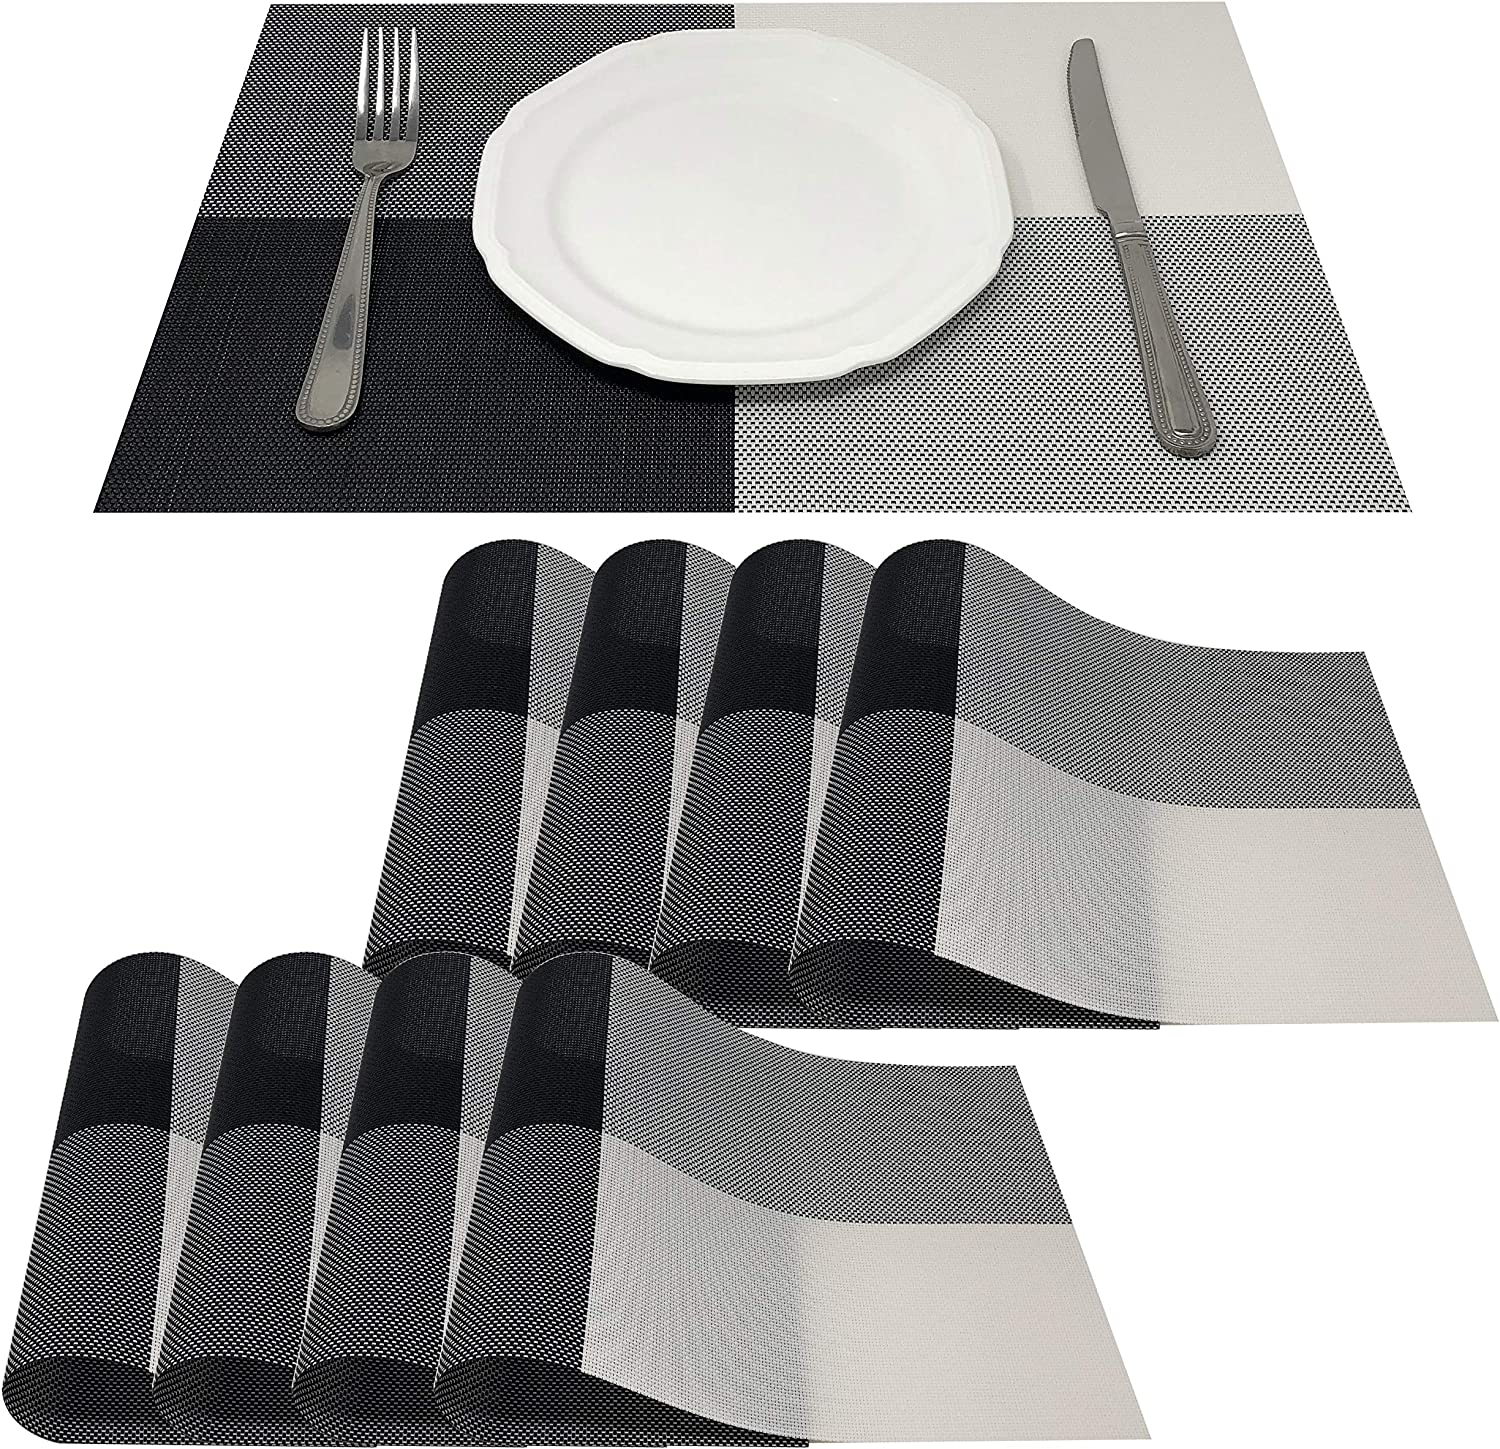 Amazon Com Allgala 8 Pack Dining Table Pvc Placemat Set Protect Table From Heat Stain Scratch And Anti Skid Style Black White Square Hd80203 Home Kitchen